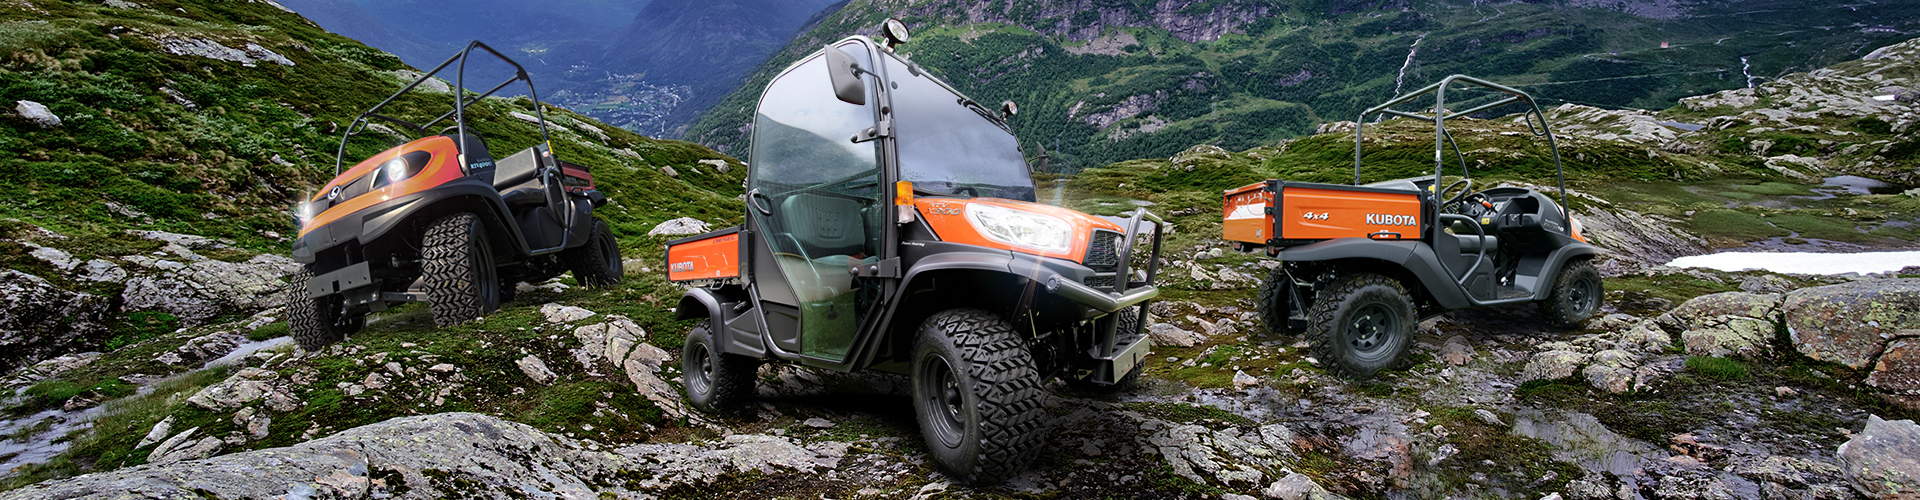 GET YOUR NEW RTV WITH 0% FINANCE THIS SUMMER